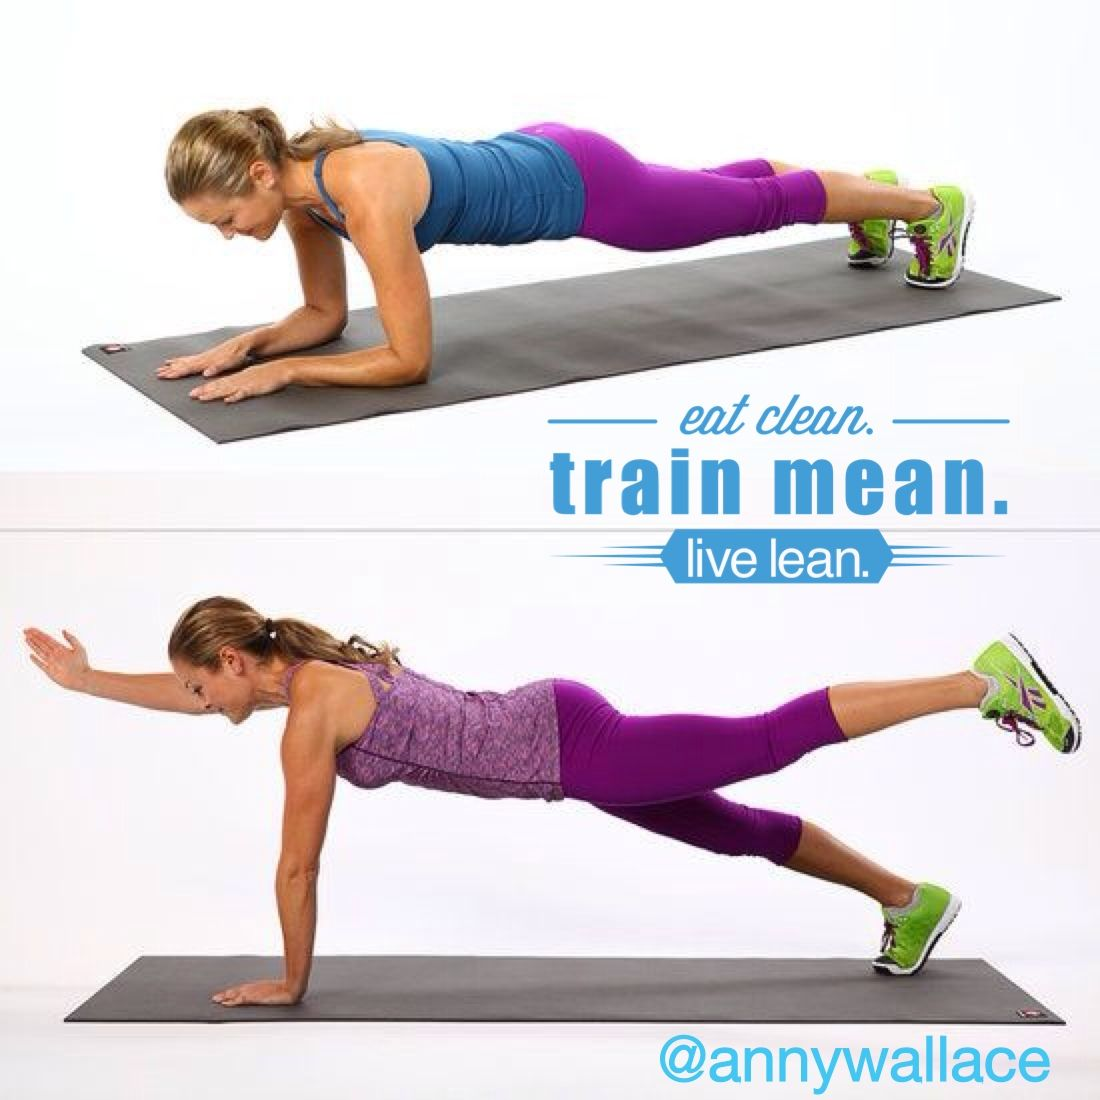 Plank Challenge Day 5 #plank #fitness #p90x3 #workout www.annywallace.com